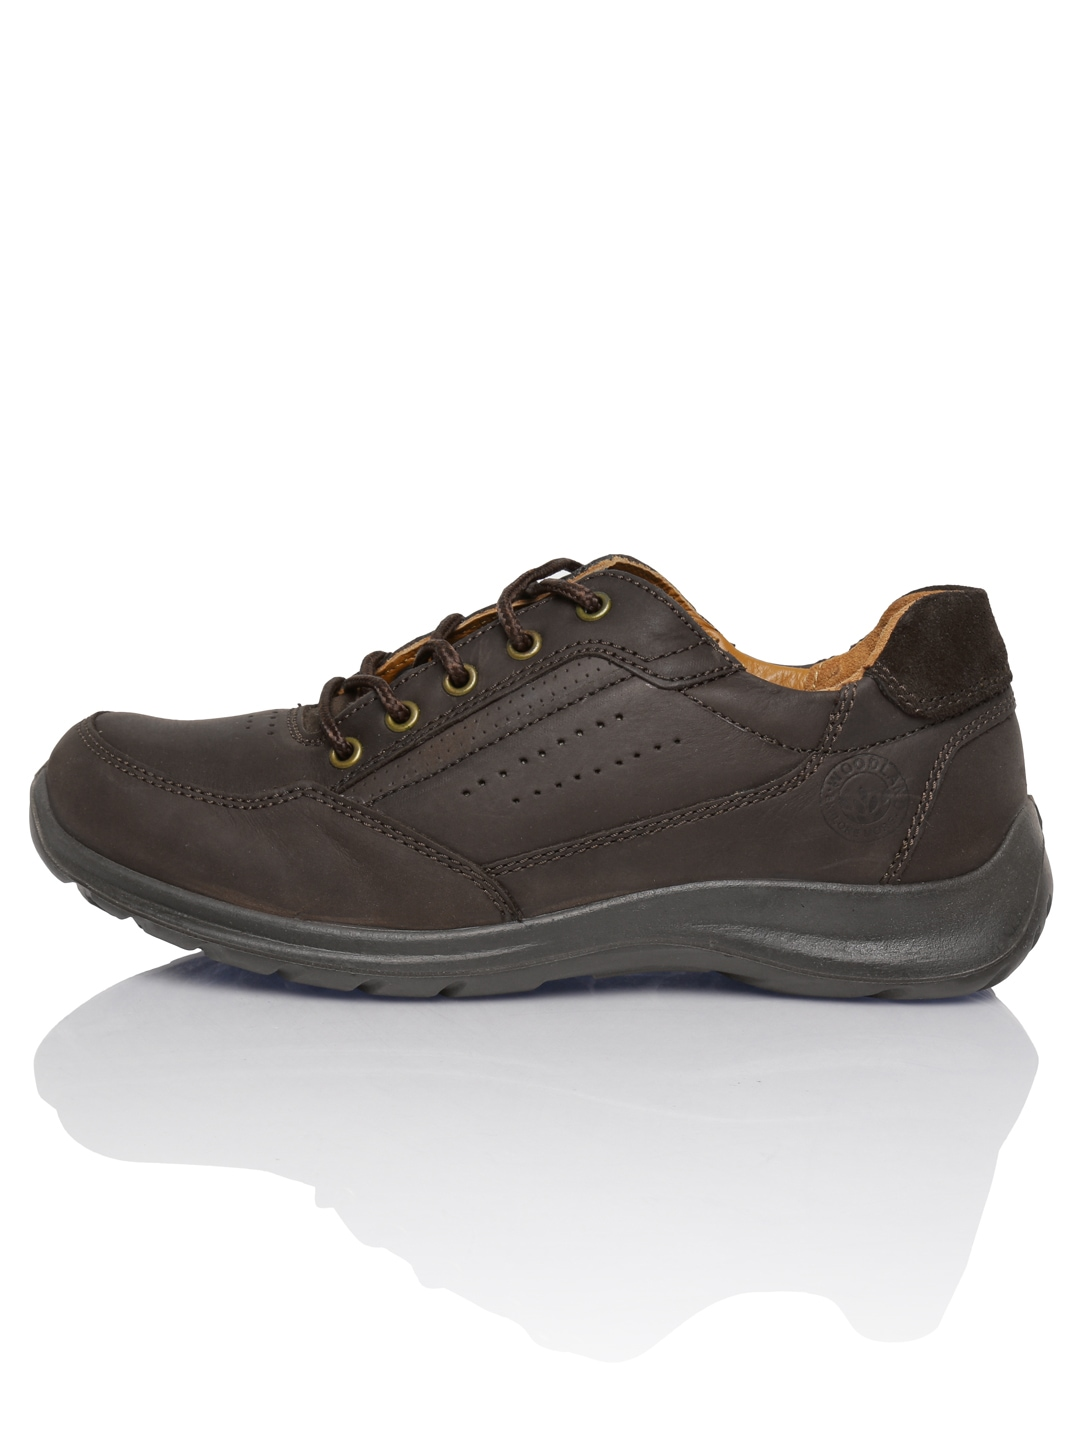 myntra woodland coffee brown leather casual shoes